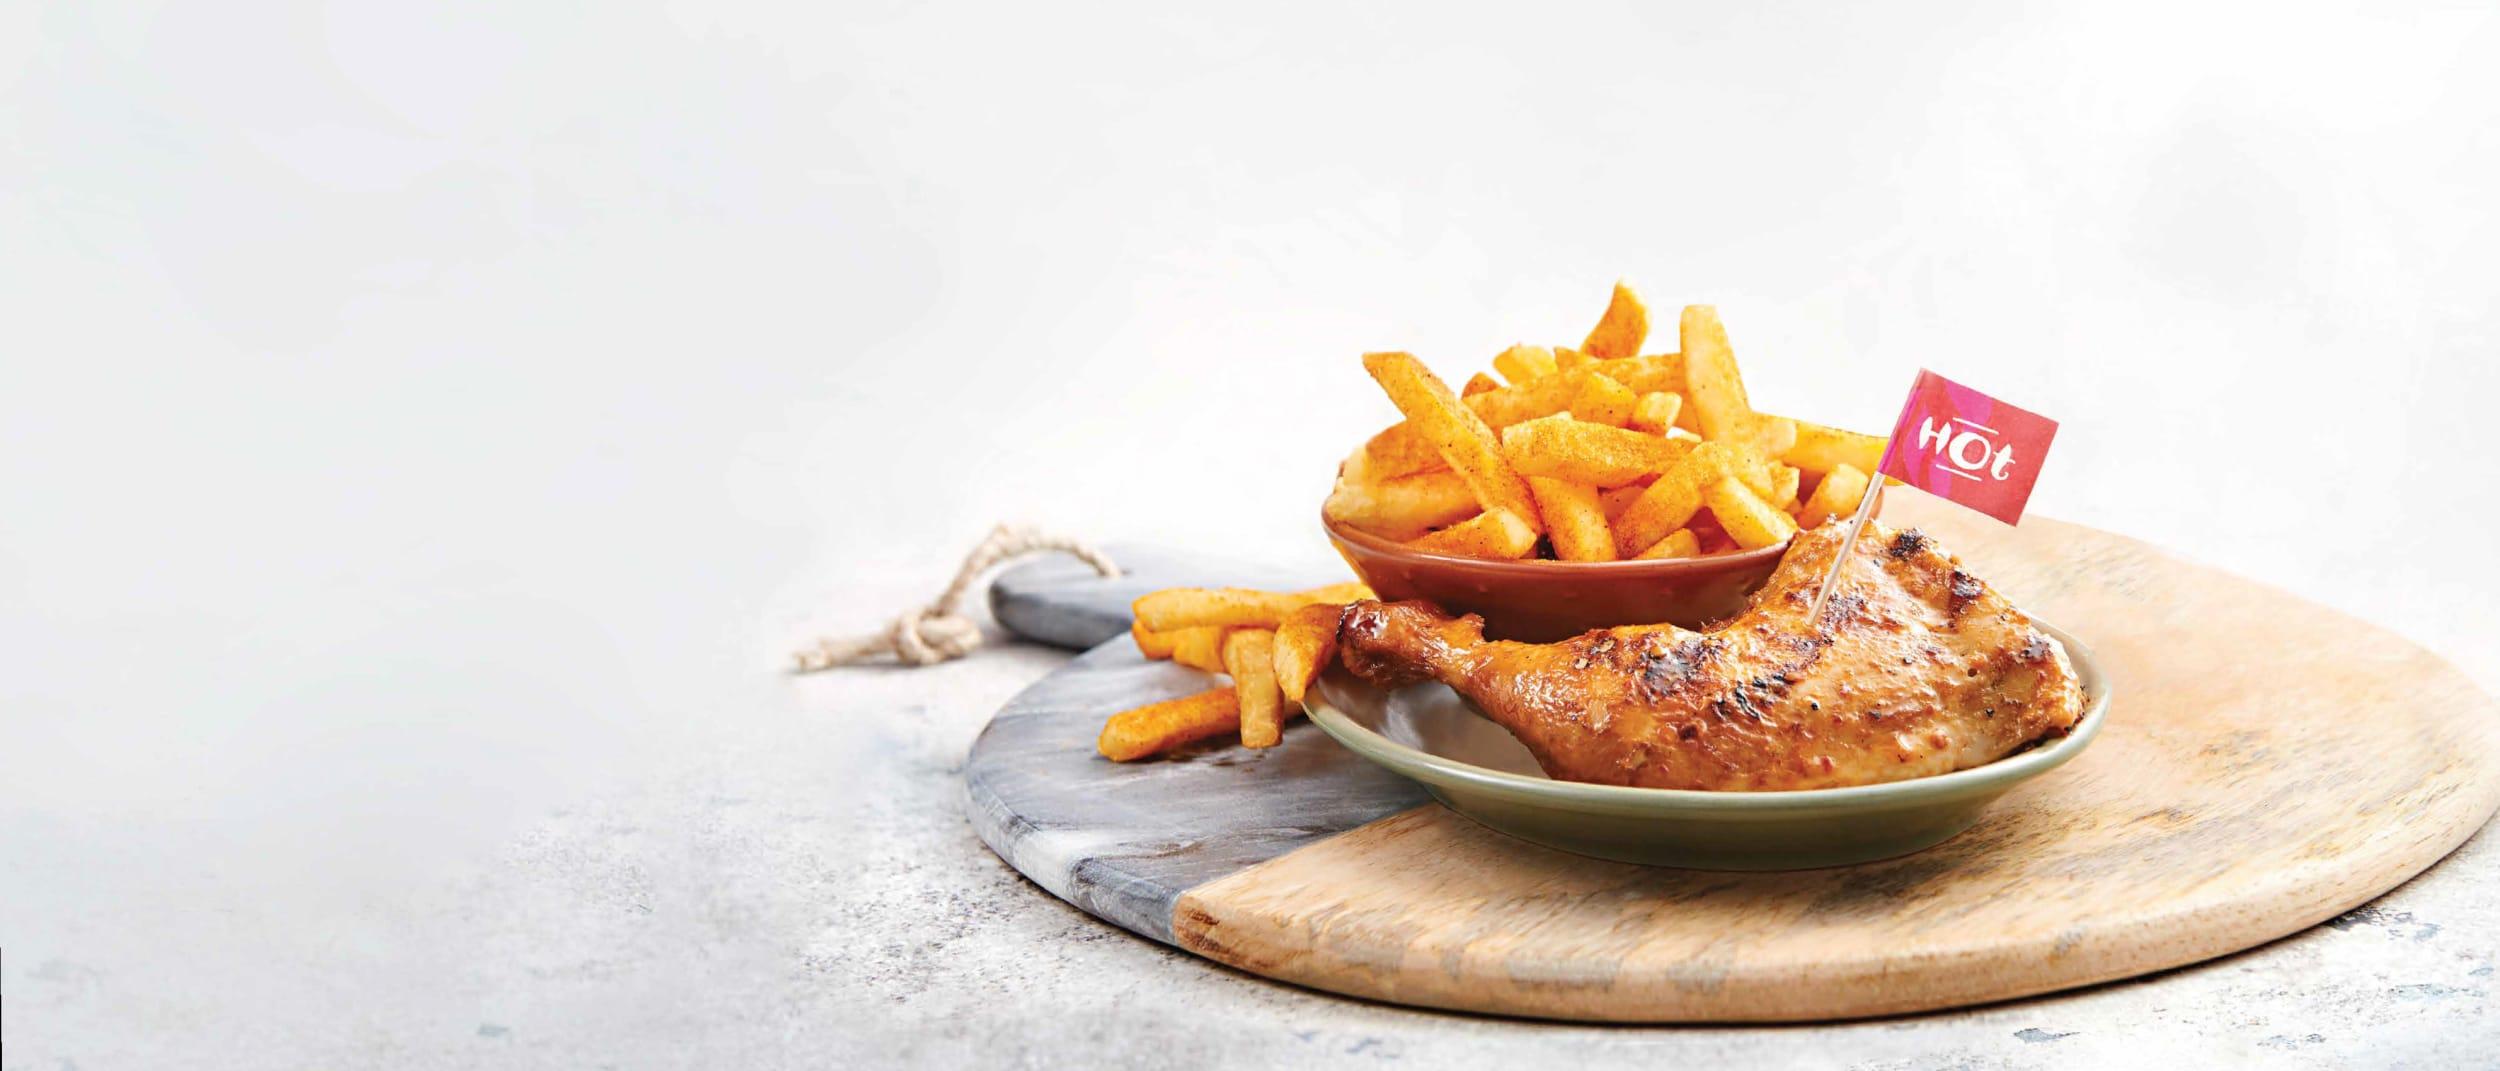 Nandos: Chicken giveaway day